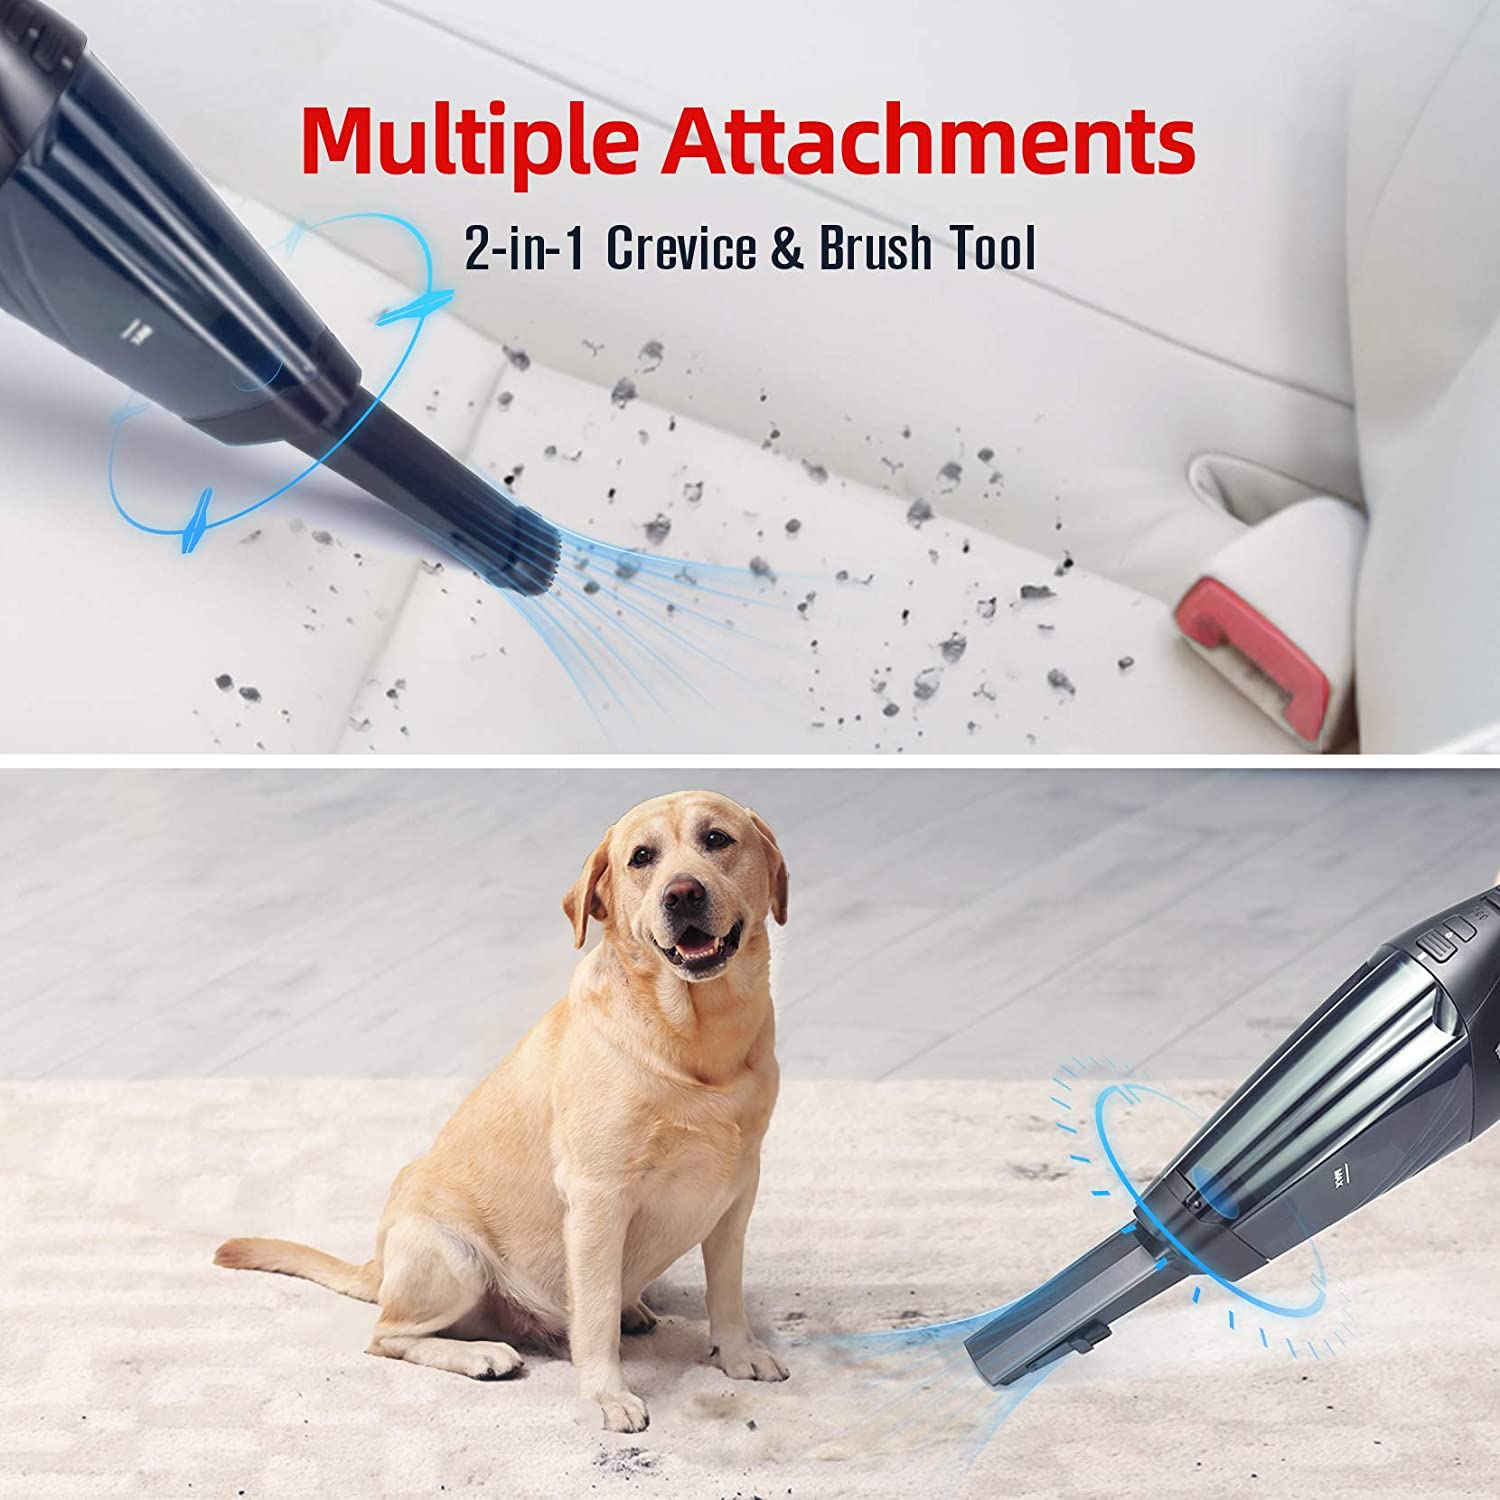 Lightweight Vacuum for Home Car Pet One-Button Clean, LED Light, Wet/&Dry Use, Wall-mount Charge Powerful Handheld Vacuum Cleaner Handheld Vacuums Cordles Rechargeable Car Handheld hoover